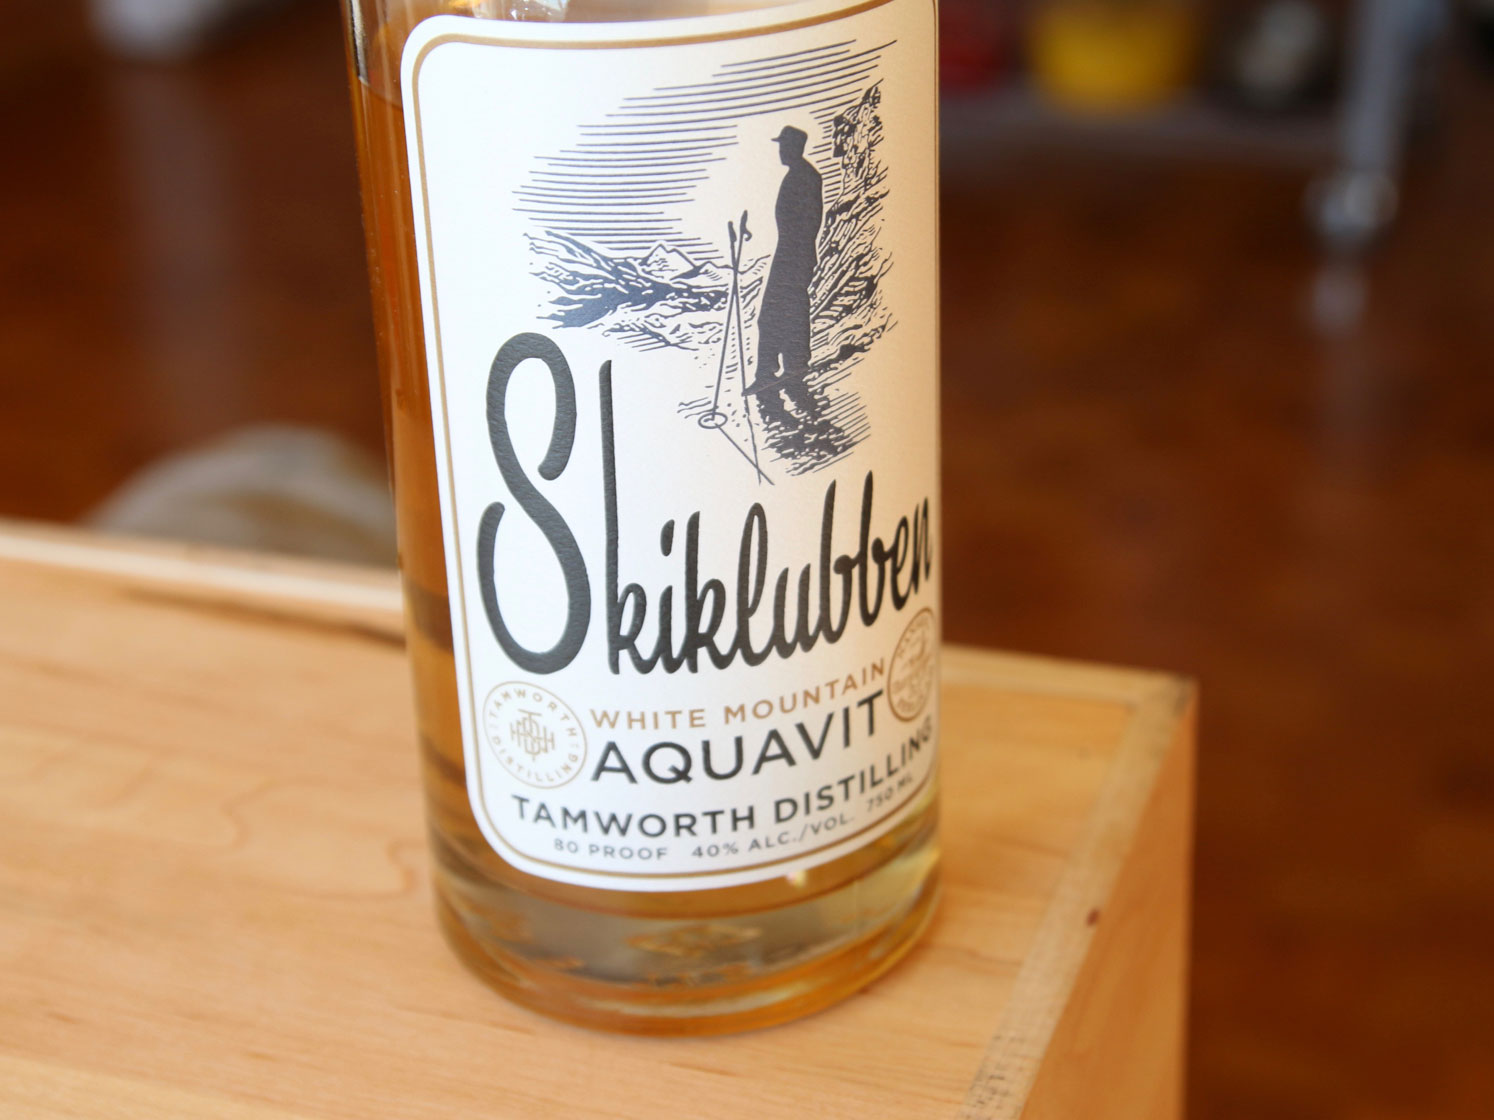 Aquavit Cocktails